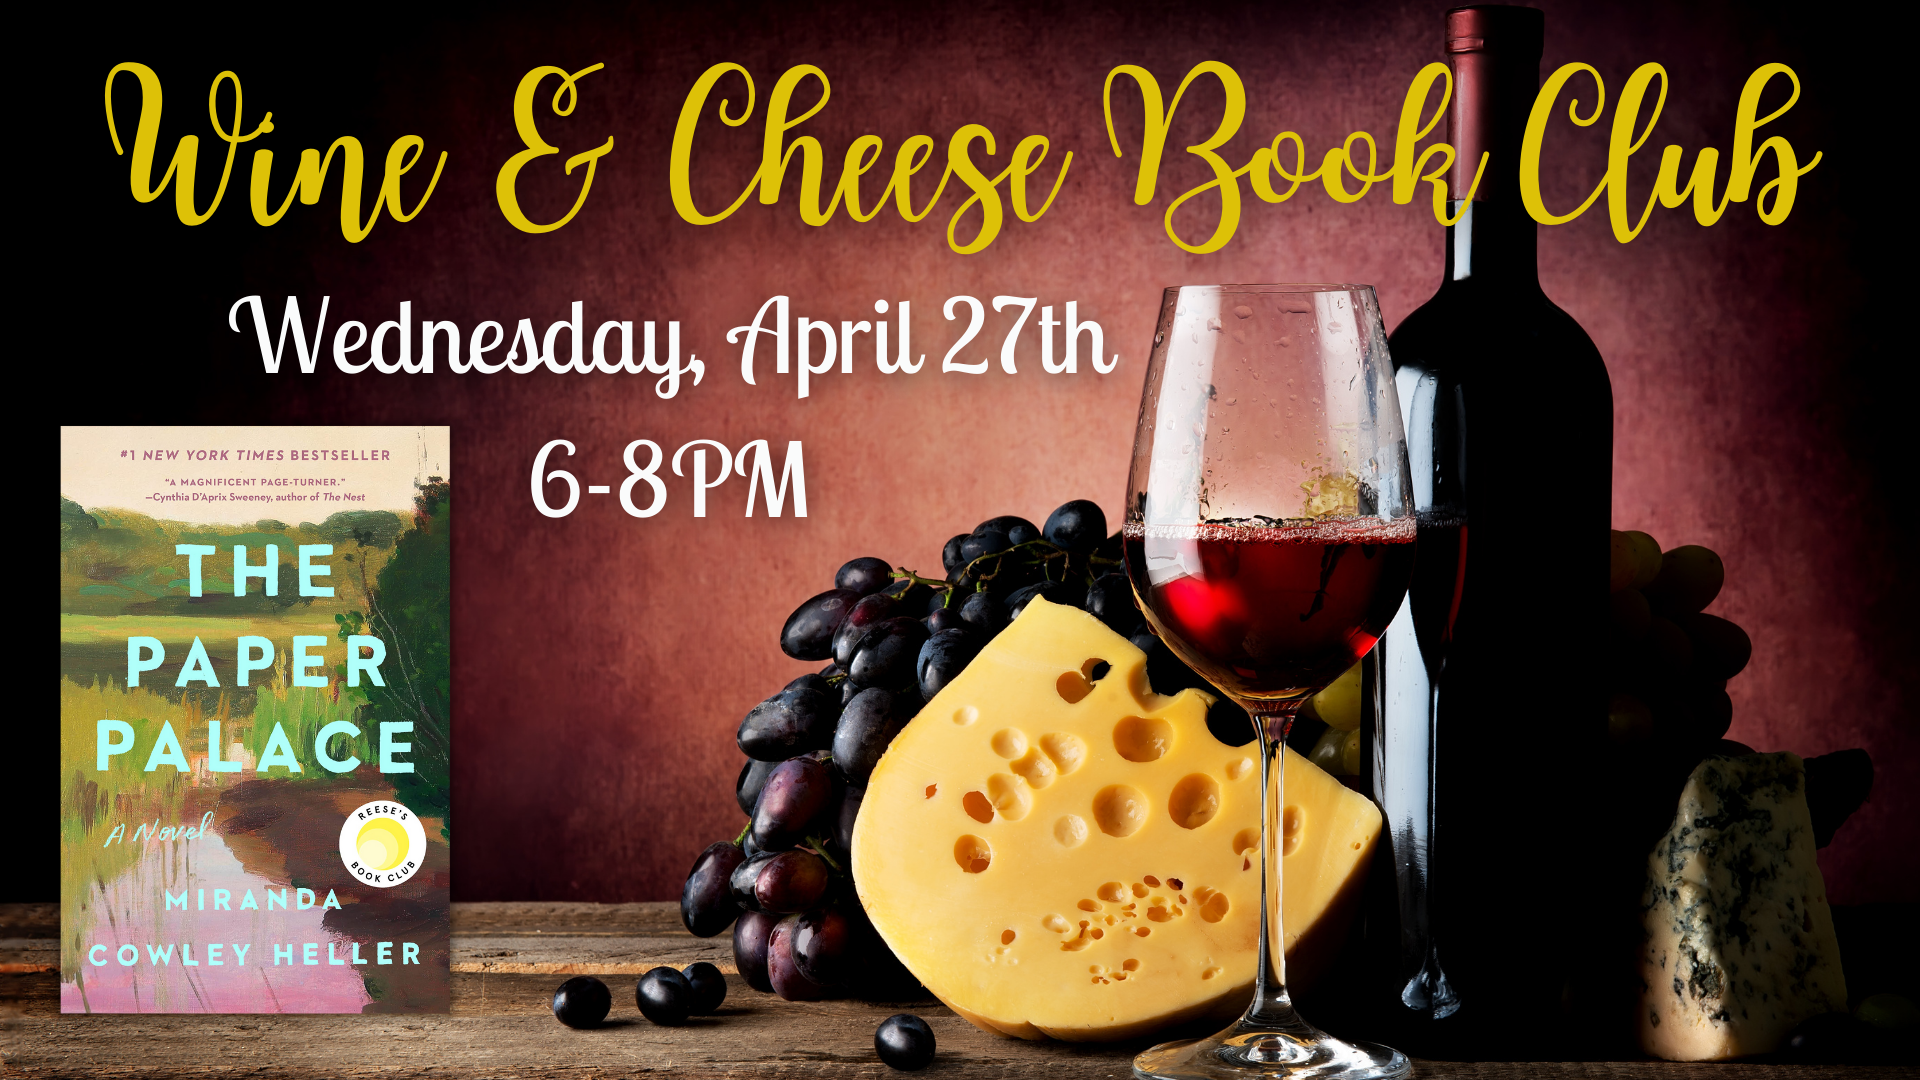 Wine and Cheese Book Club